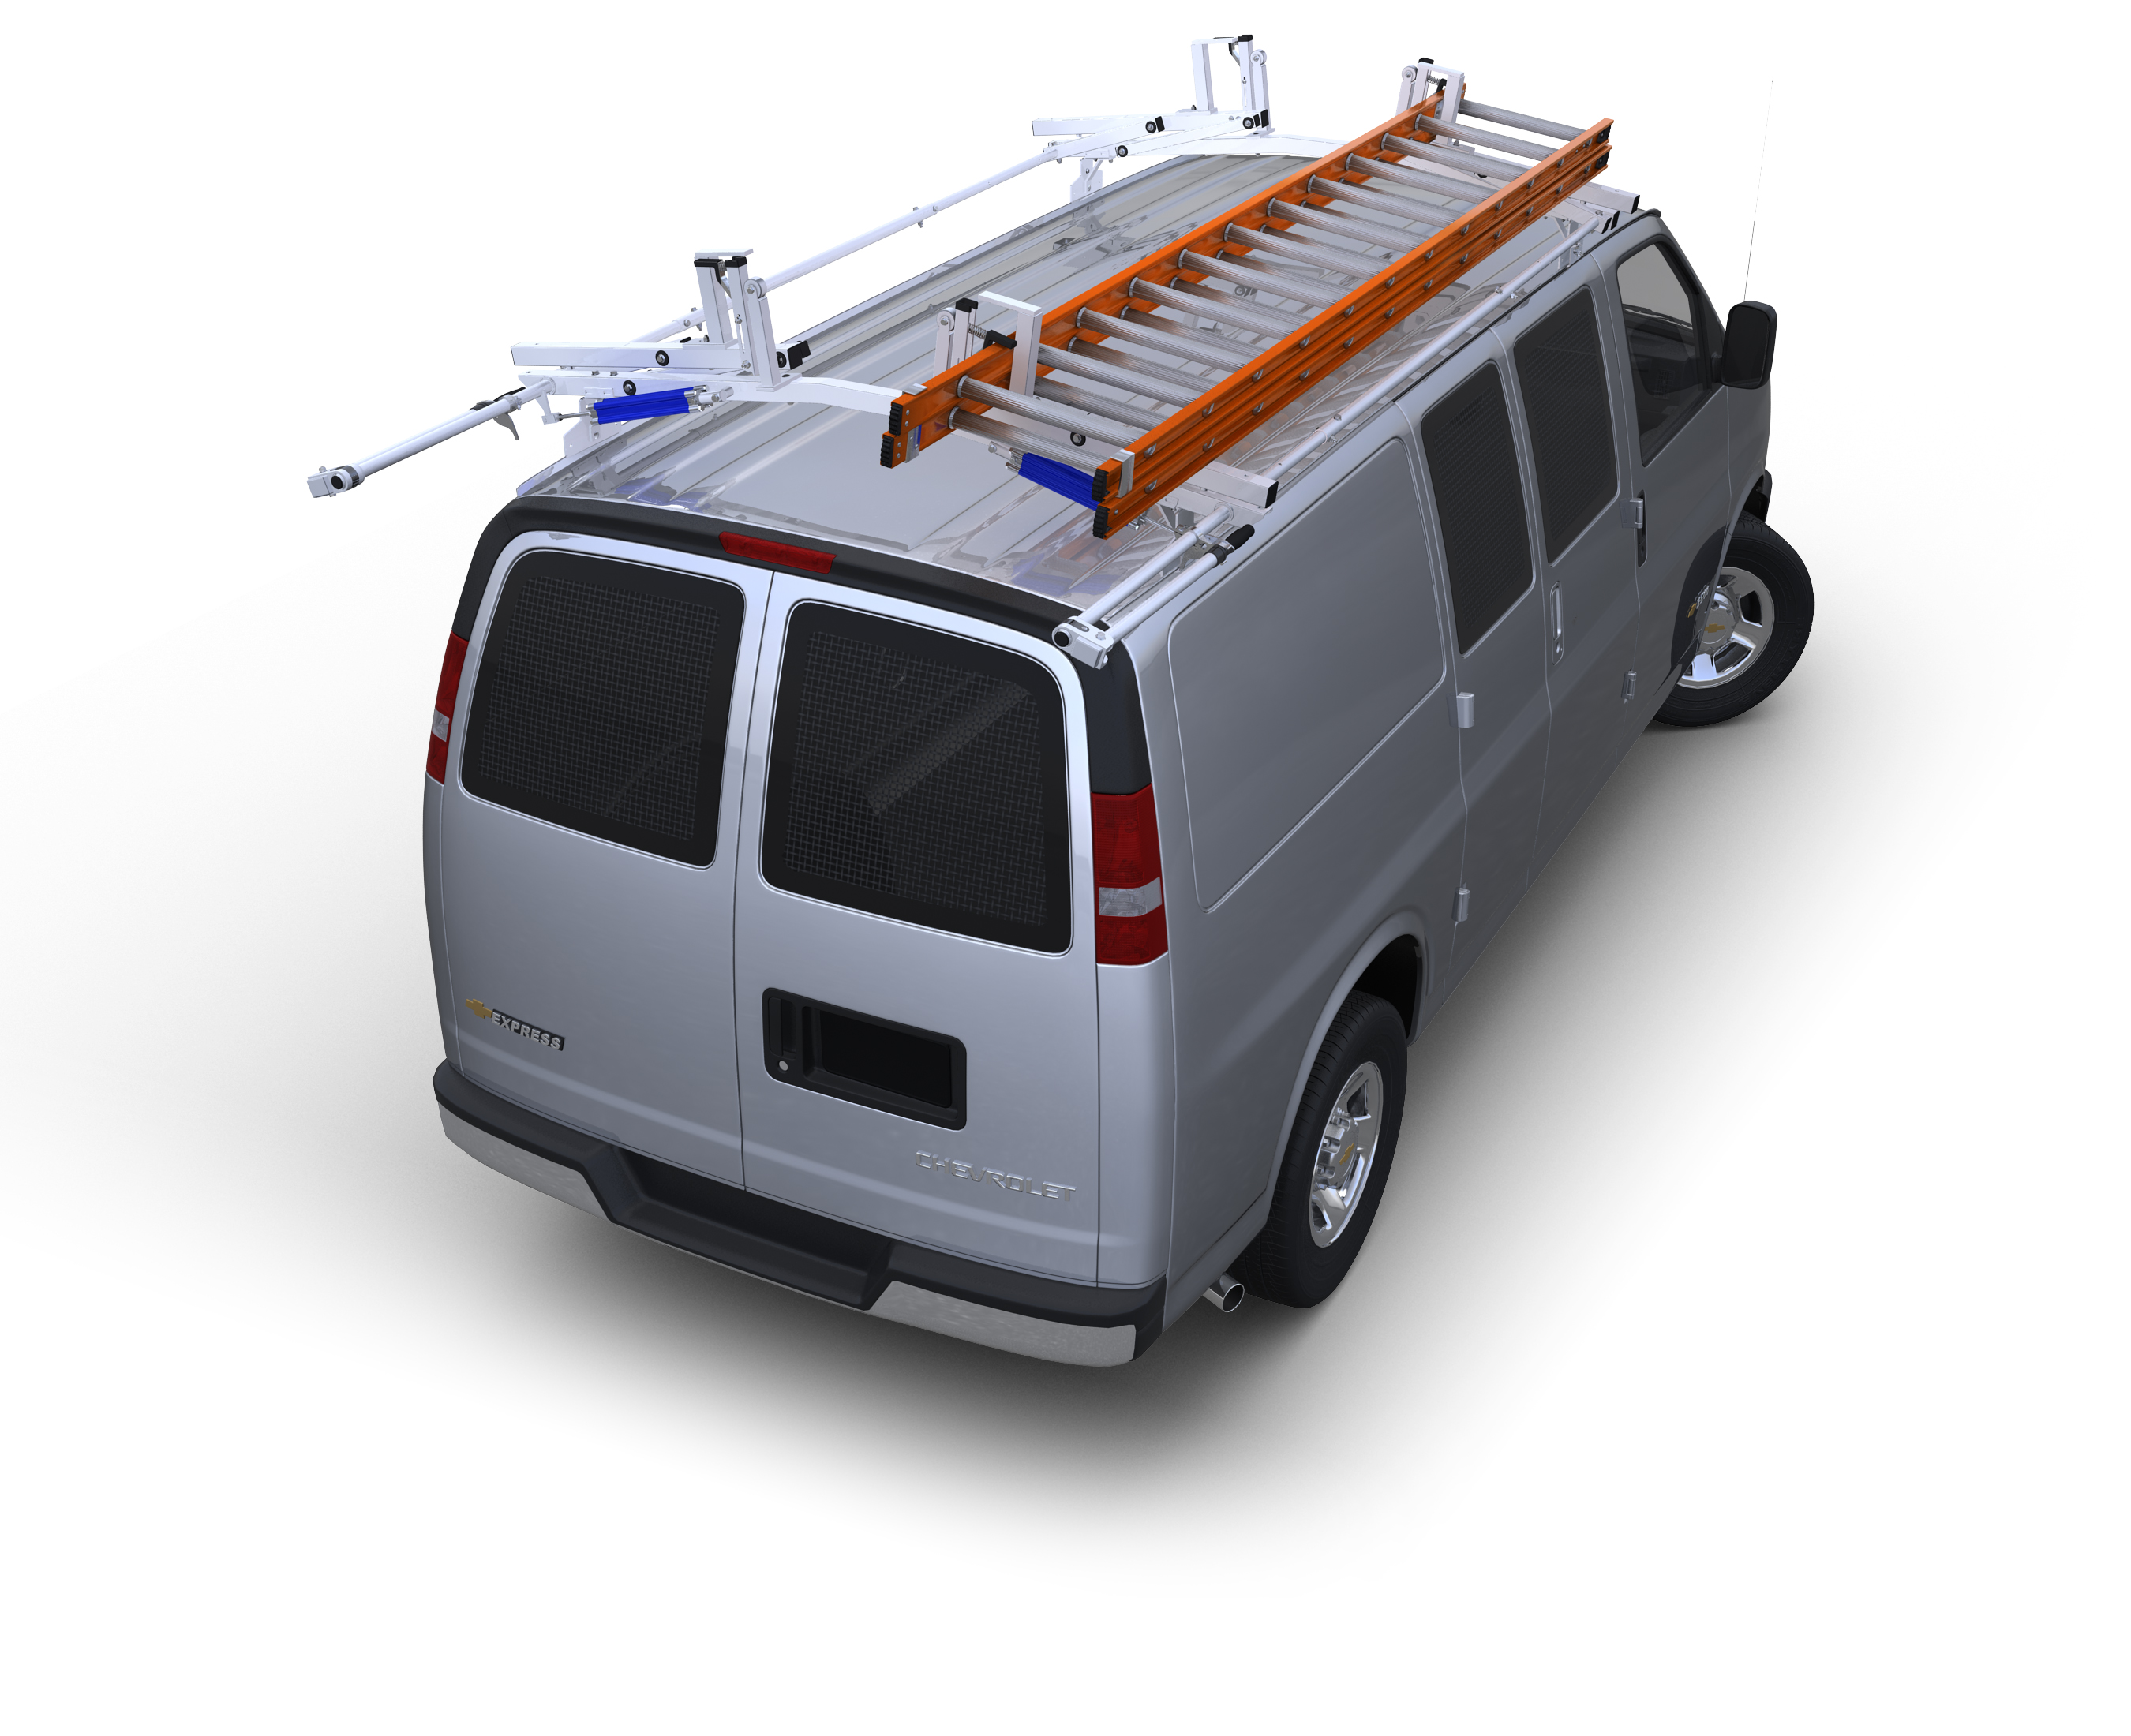 Modular Storage Units for High Roof Vans w/ Small Parts Drawers